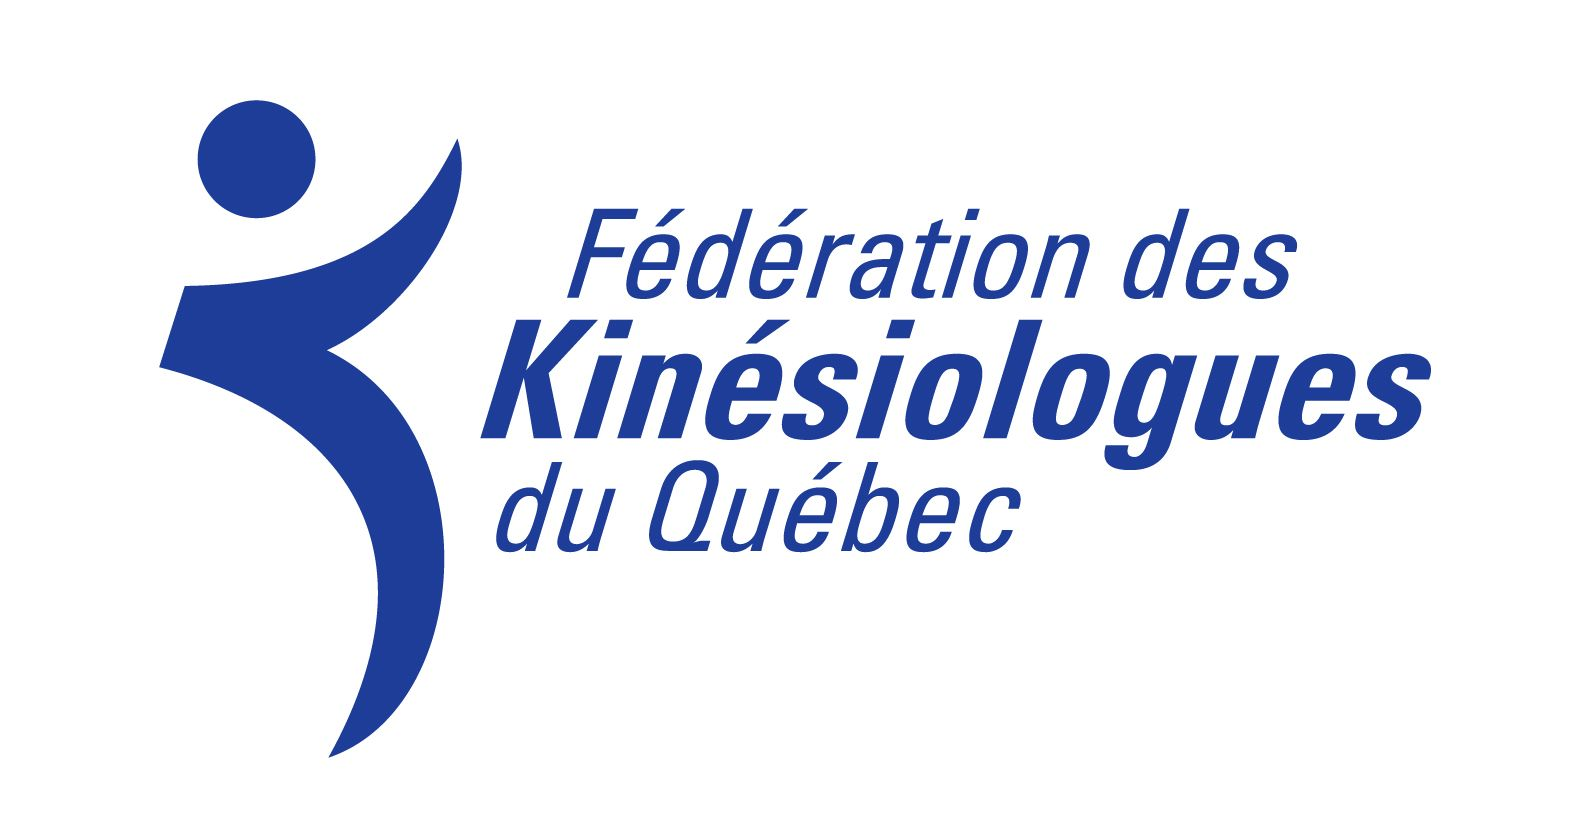 Quebec Kinesiologists Federation